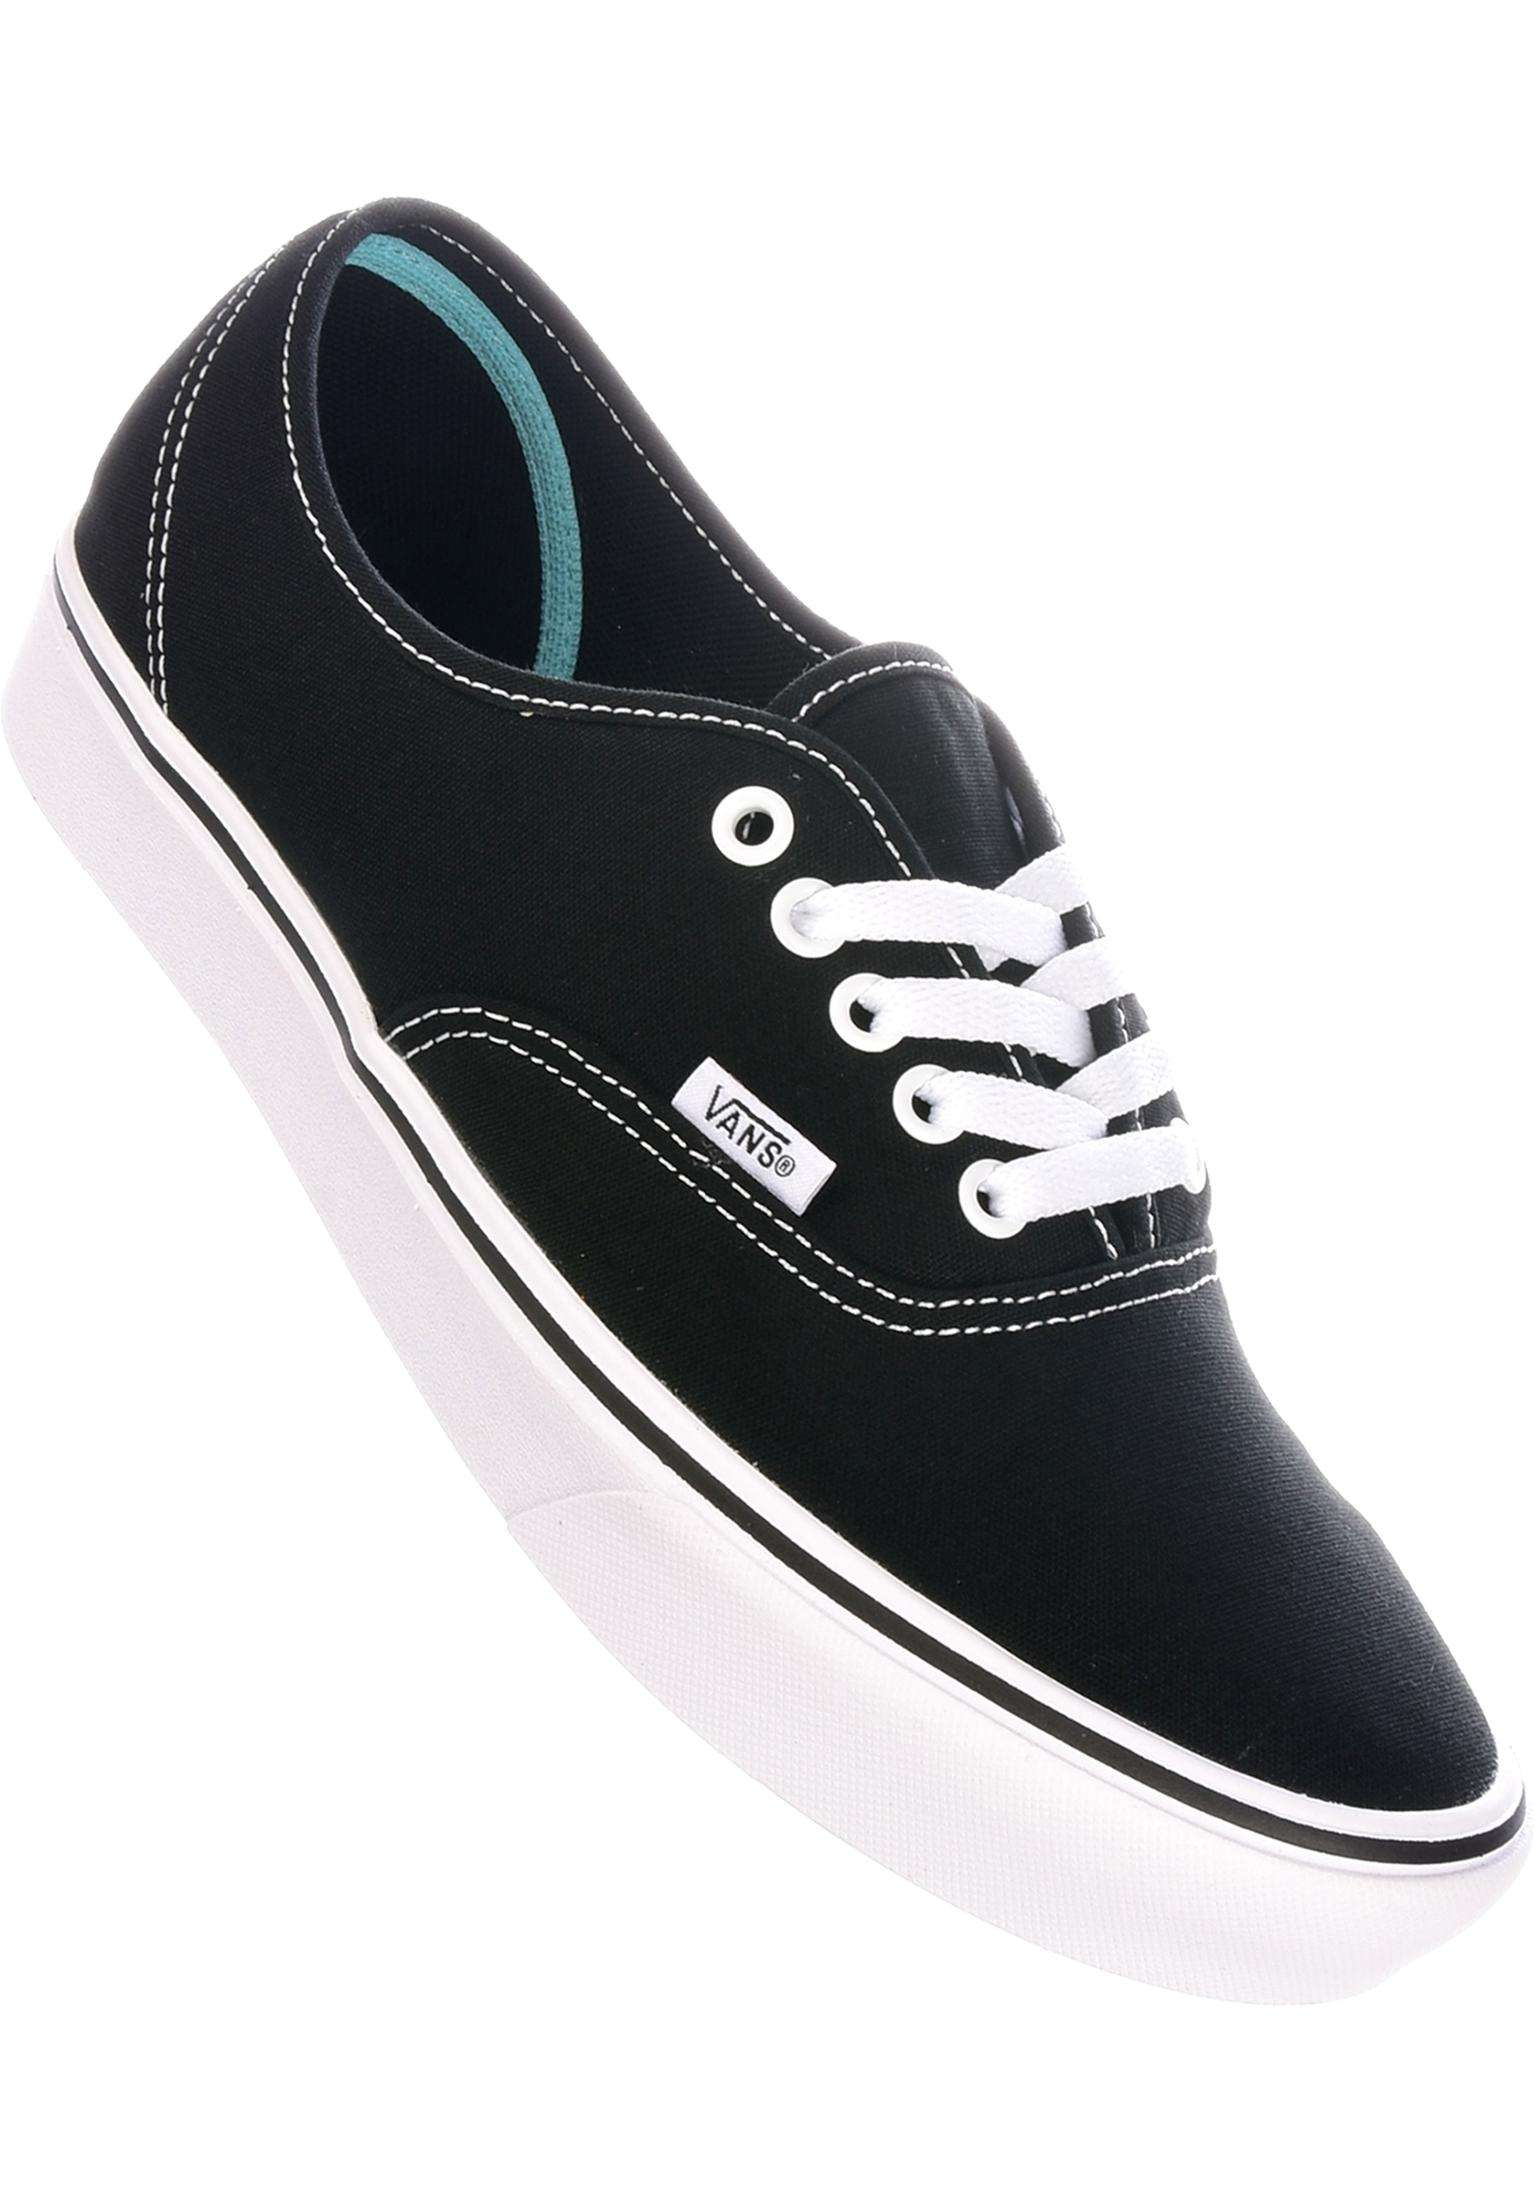 finest selection ee080 97bbc Vans Authentic Comfy Cush